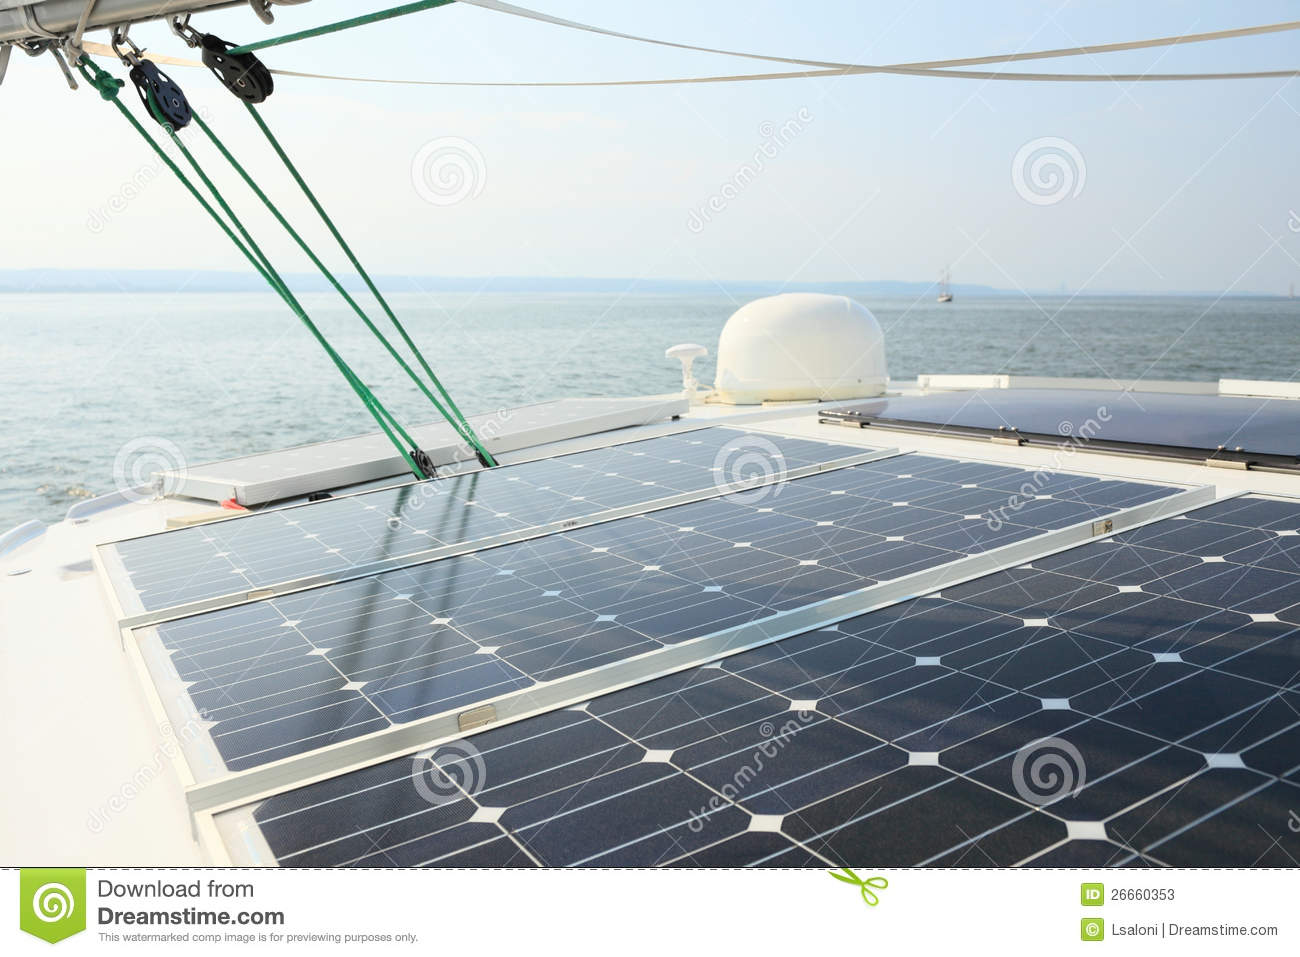 ... Charging Batteries Aboard Sail Boat Stock Photos - Image: 26660353